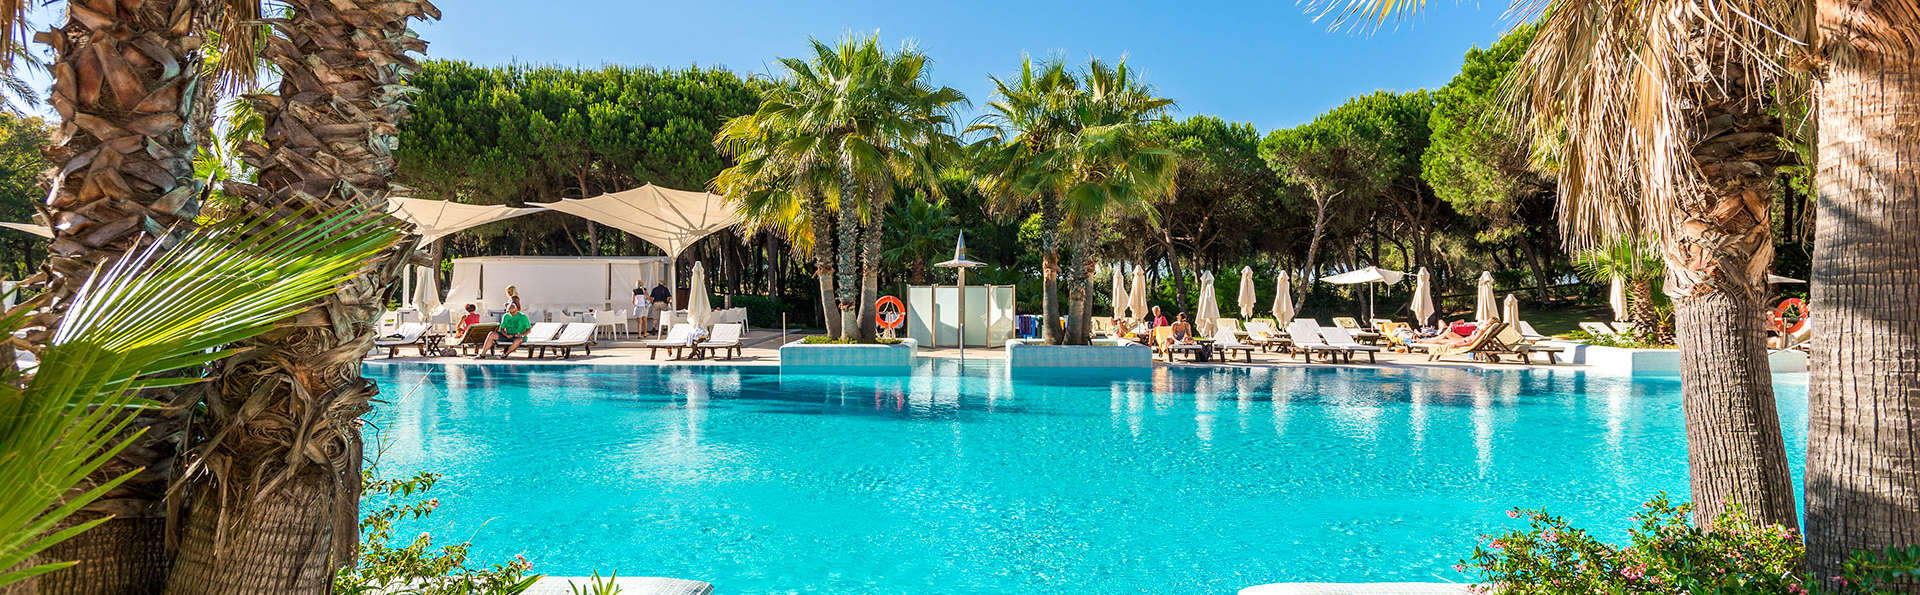 Sensimar Isla Cristina Palace (Adults Only)  - EDIT_NEW_pool10.jpg